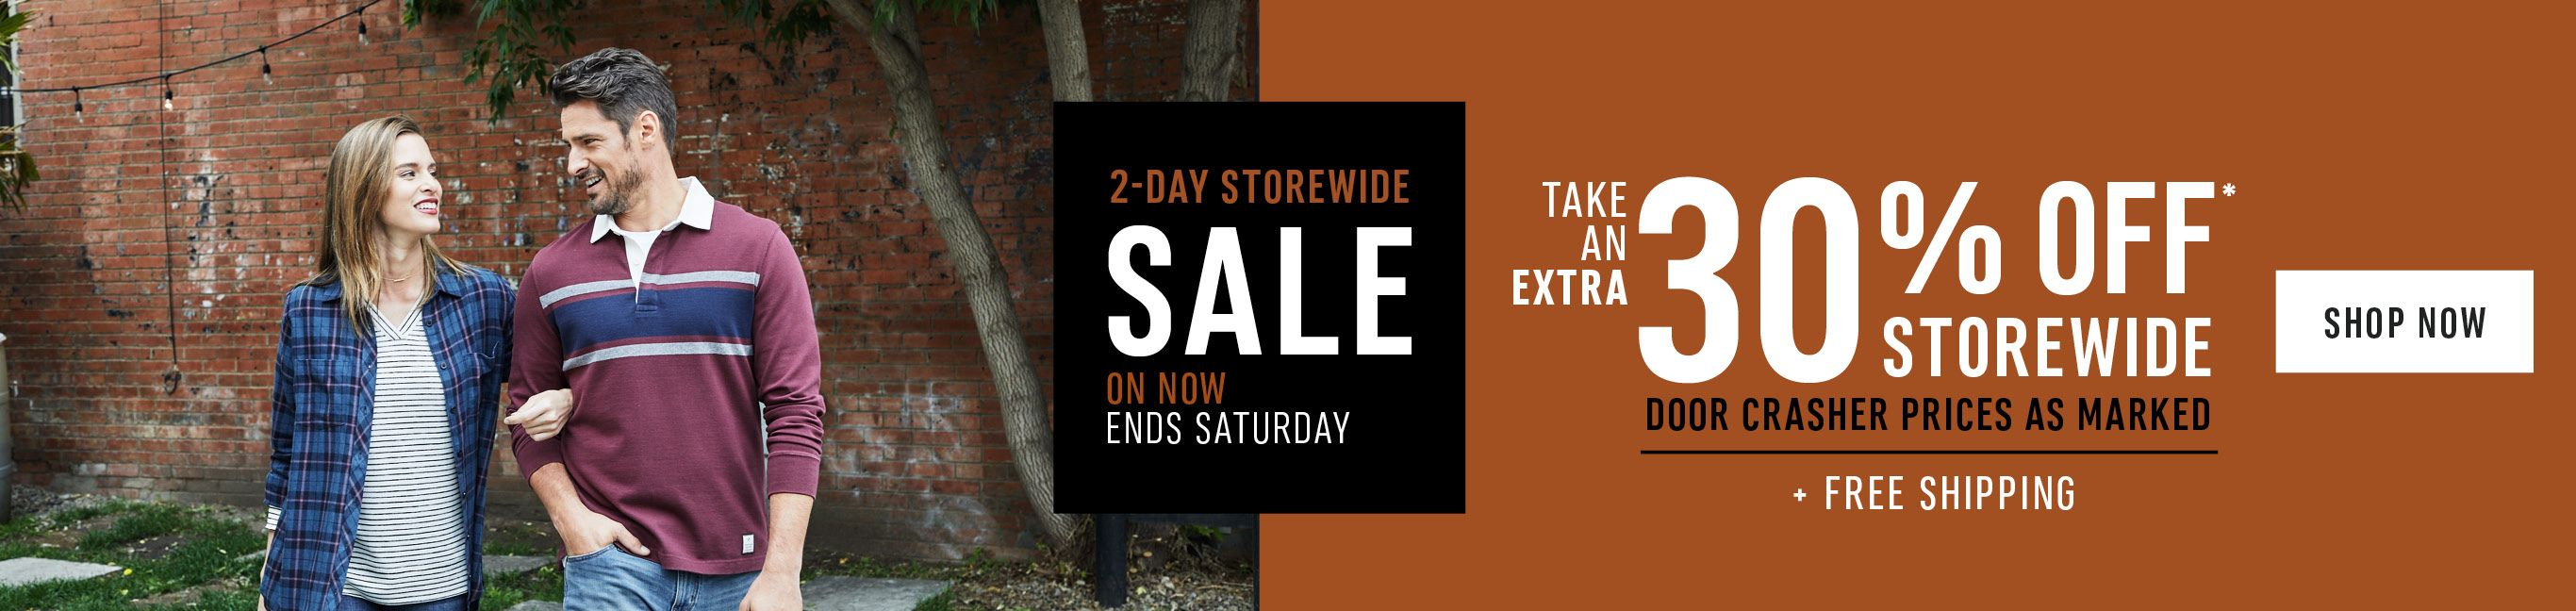 2-Day Storewide Sale. On Now, Ends Saturday. Take an Extra 30% Off Storewide plus Free Shipping. Shop Now!